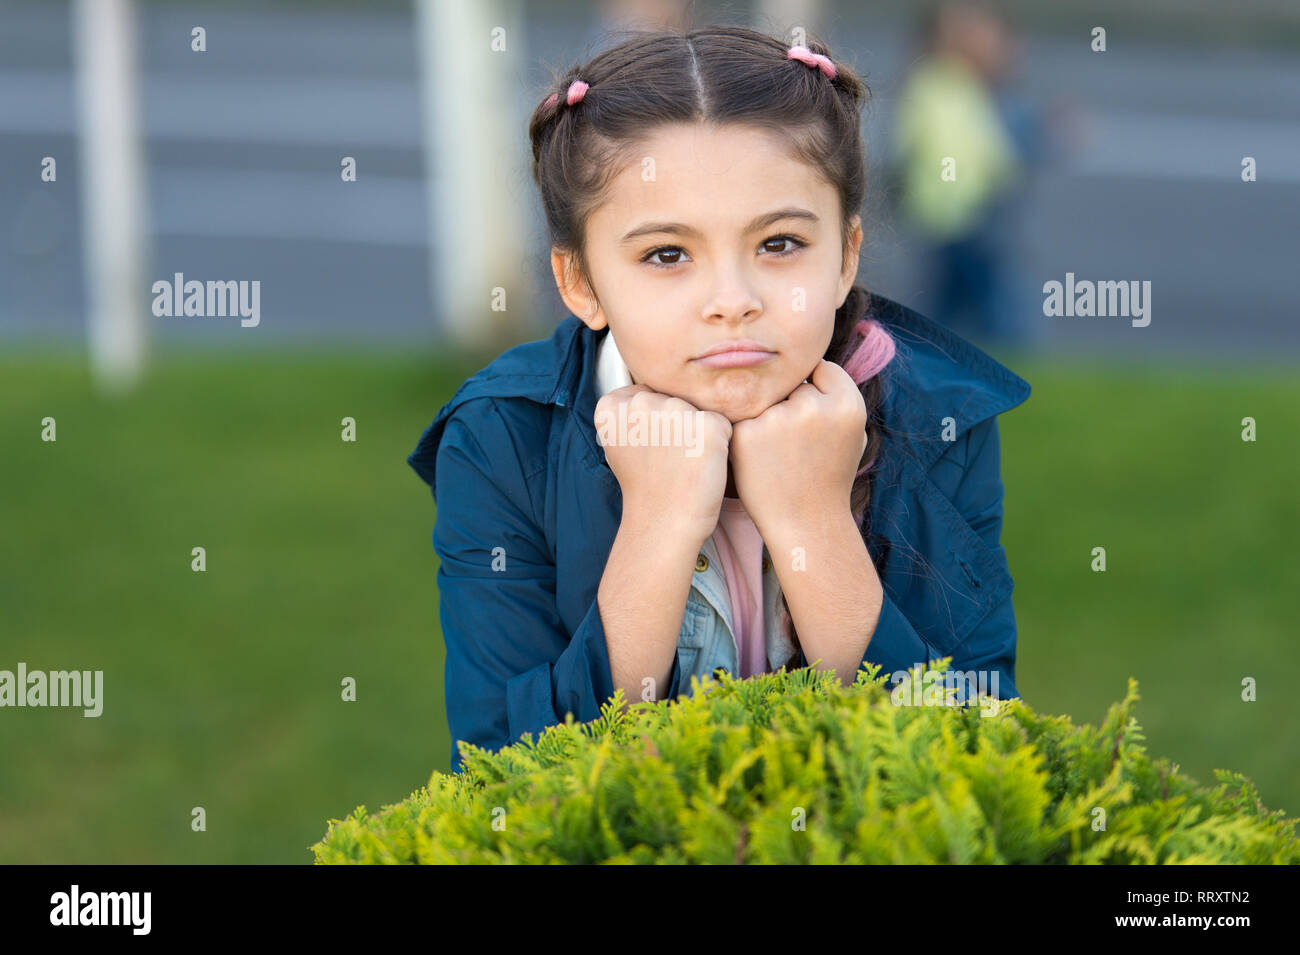 Little fashion model. Clothes and accessory. Kid wear trench coat. Spring coat. Must have concept. Fashionable coat. Girl cute face braided hair posing coat in spring park. Clothing for spring walks. - Stock Image